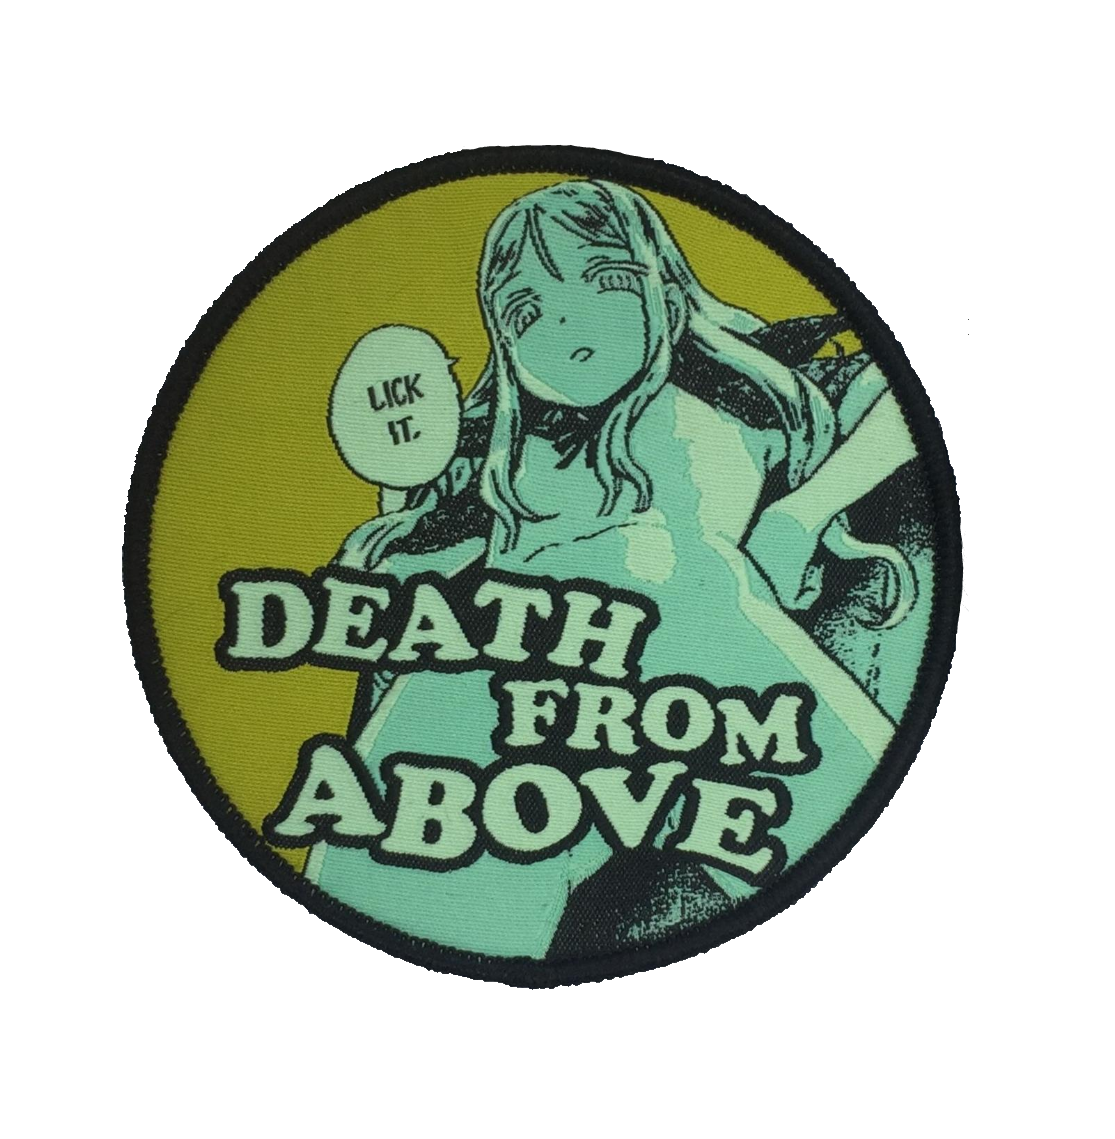 Image of Death From Above